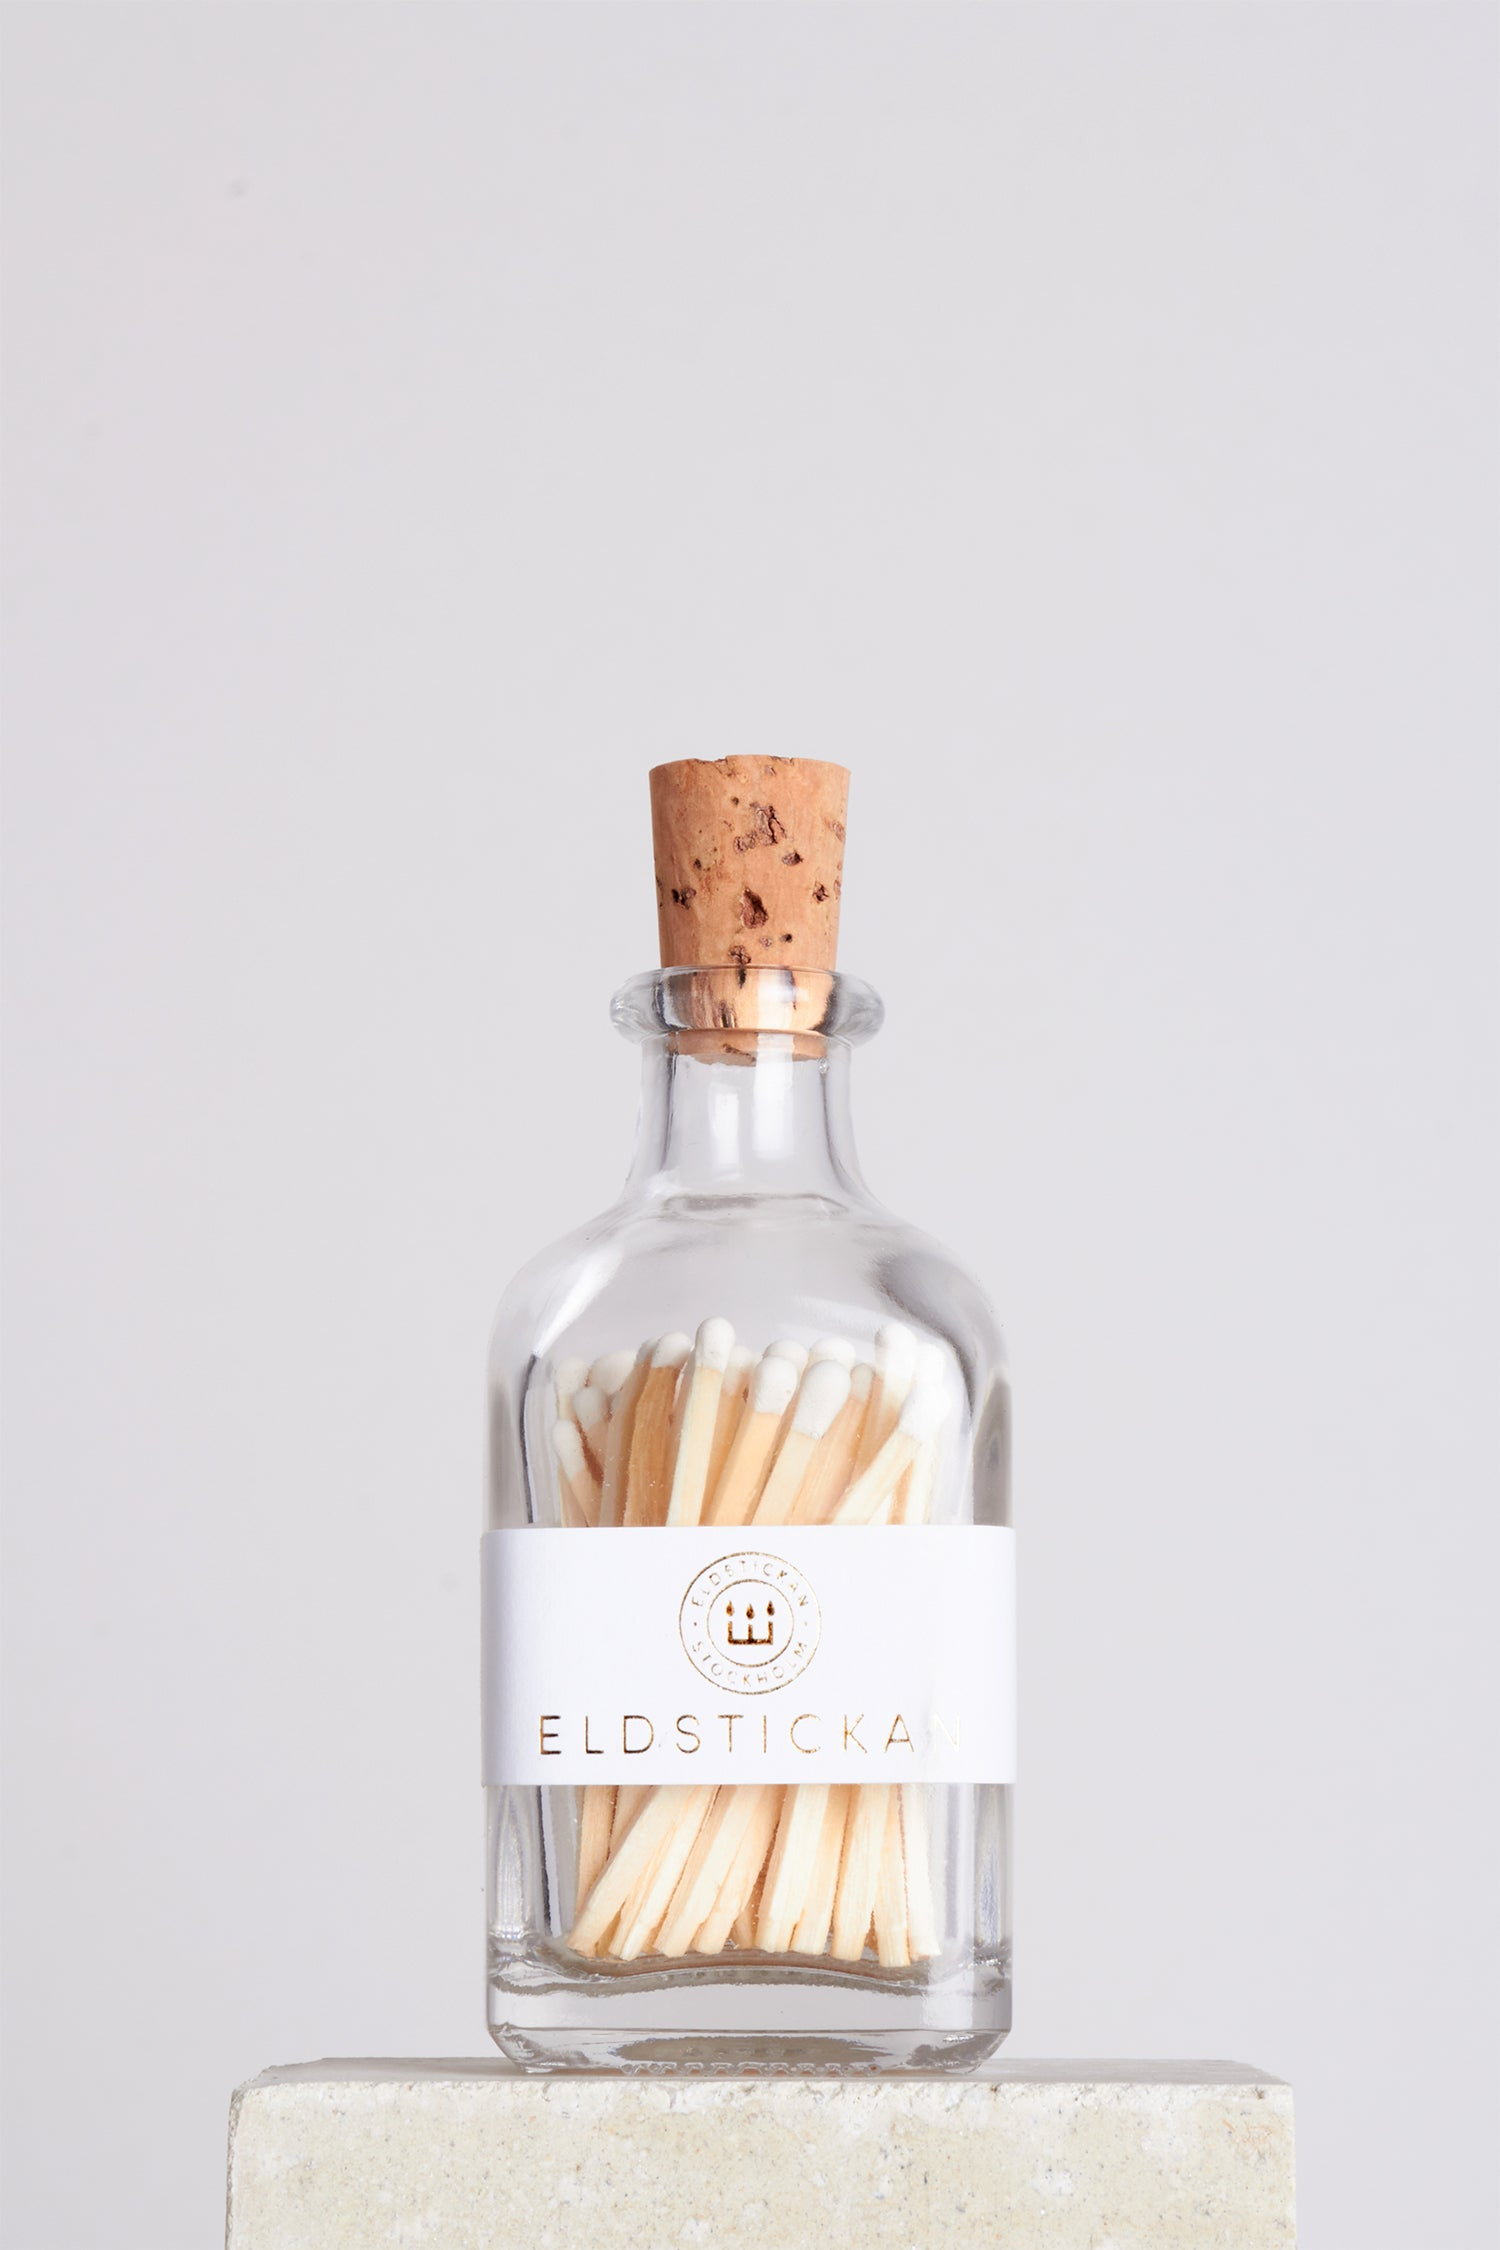 ELDSTICKAN MATCHES JAR - WHITE